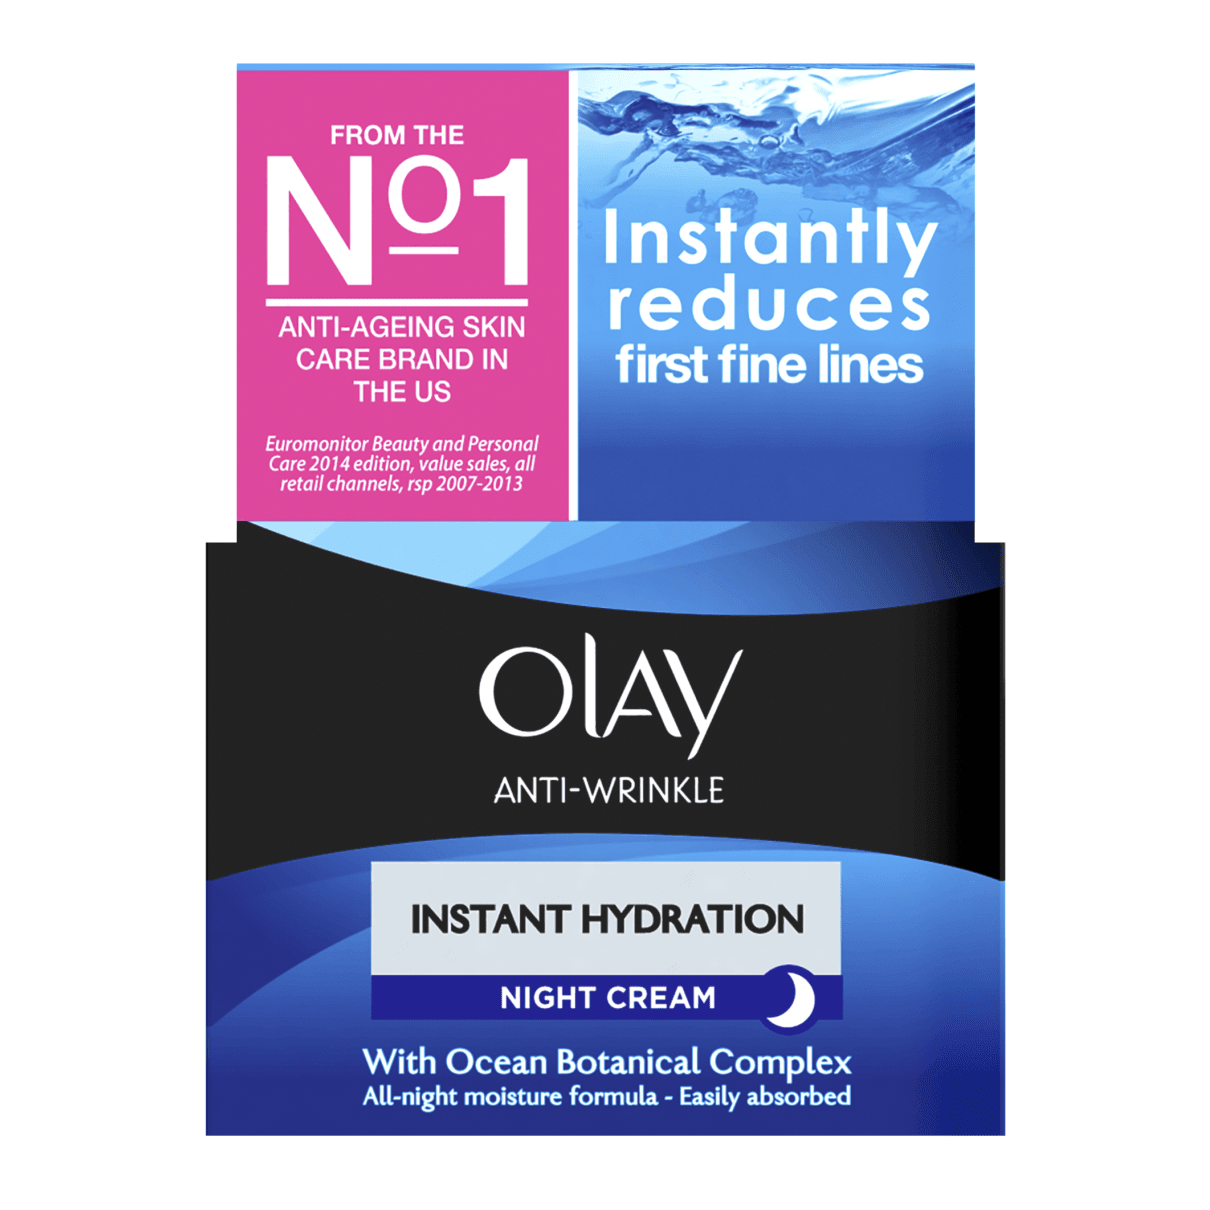 Anti-Wrinkle Instant Hydration Night Cream